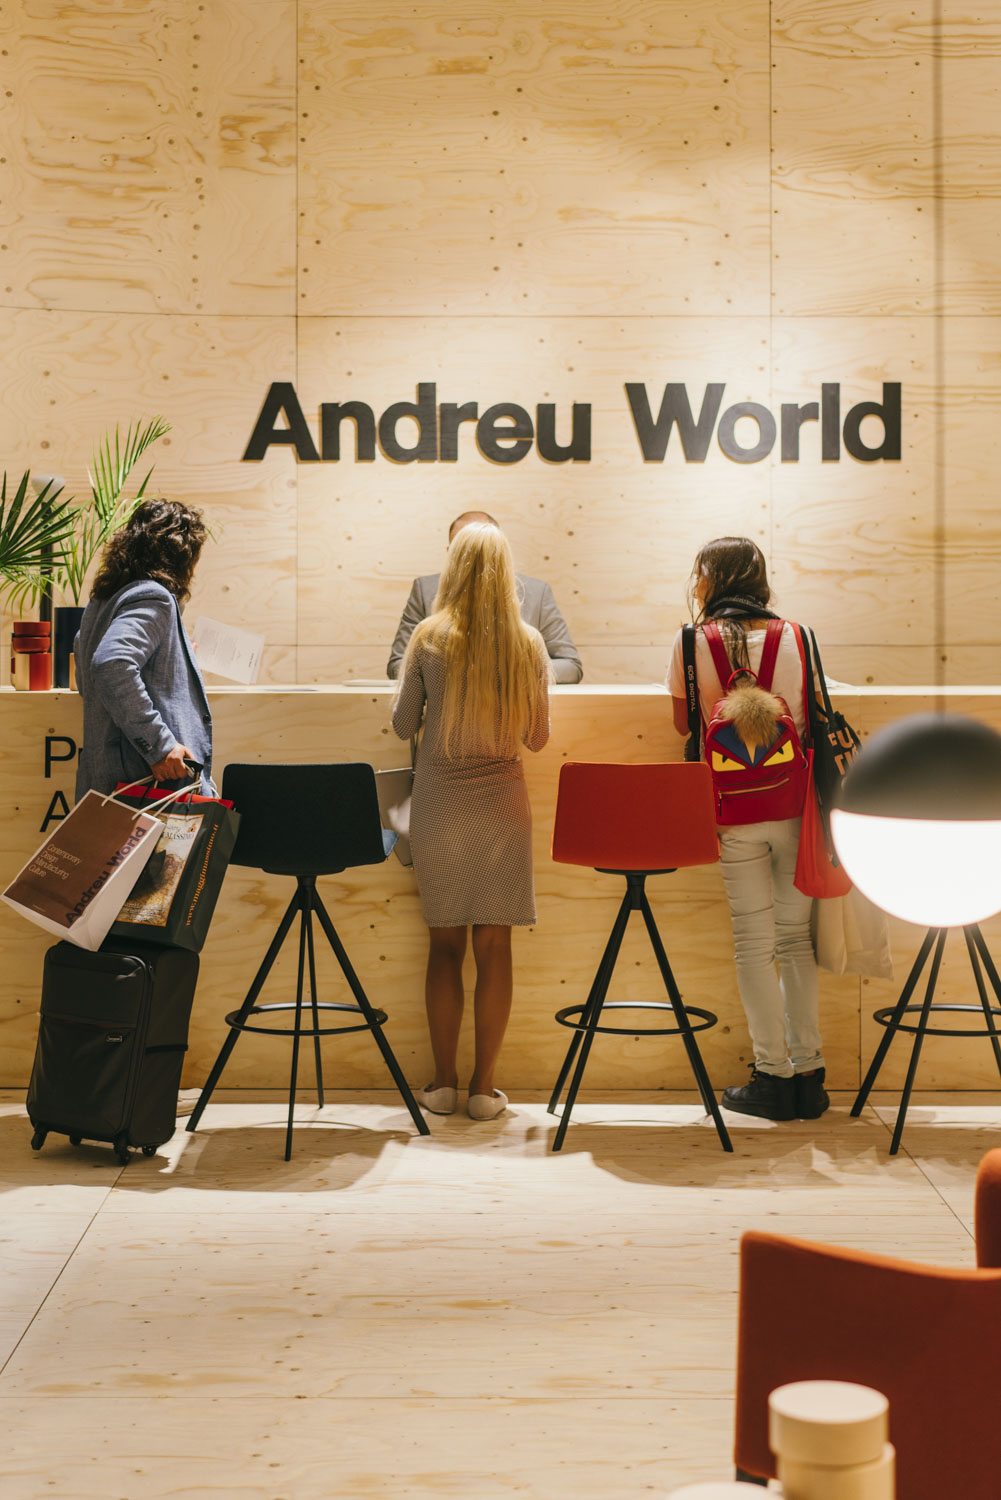 Andreu World, Salone Internazionale del Mobile, Milán, 2017